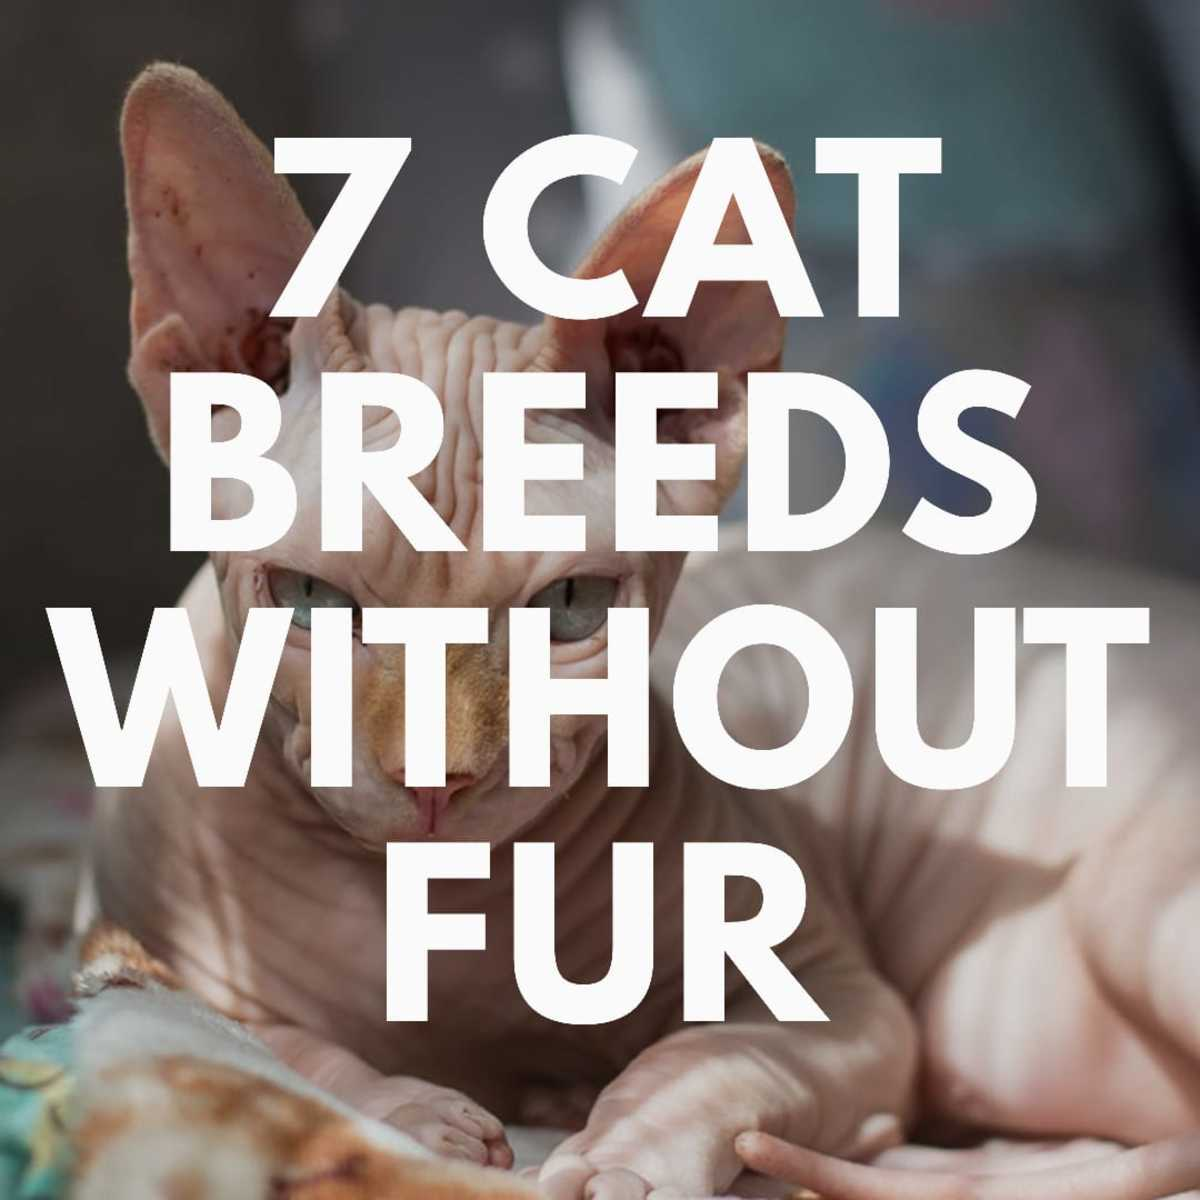 7 Cat Breeds Without Fur